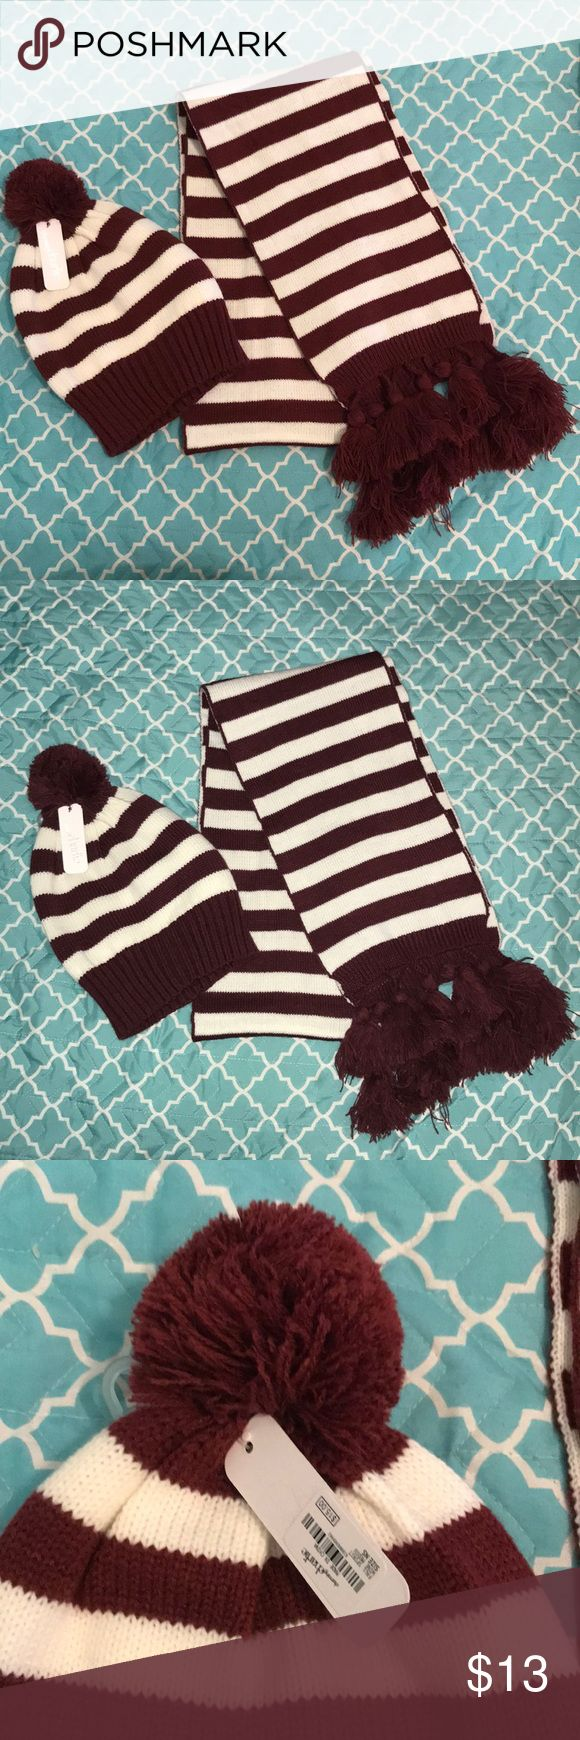 Charming Charlie Hat and Scarf SET This hat and scarf are both 100% acrylic.  The hat is brand new with tags, but the scarf isn't.   The hat has a pompom on top and the scarf has tassles on both ends of the scarf.  They are a maroon and white color.  Offers welcome! Charming Charlie Accessories Scarves & Wraps